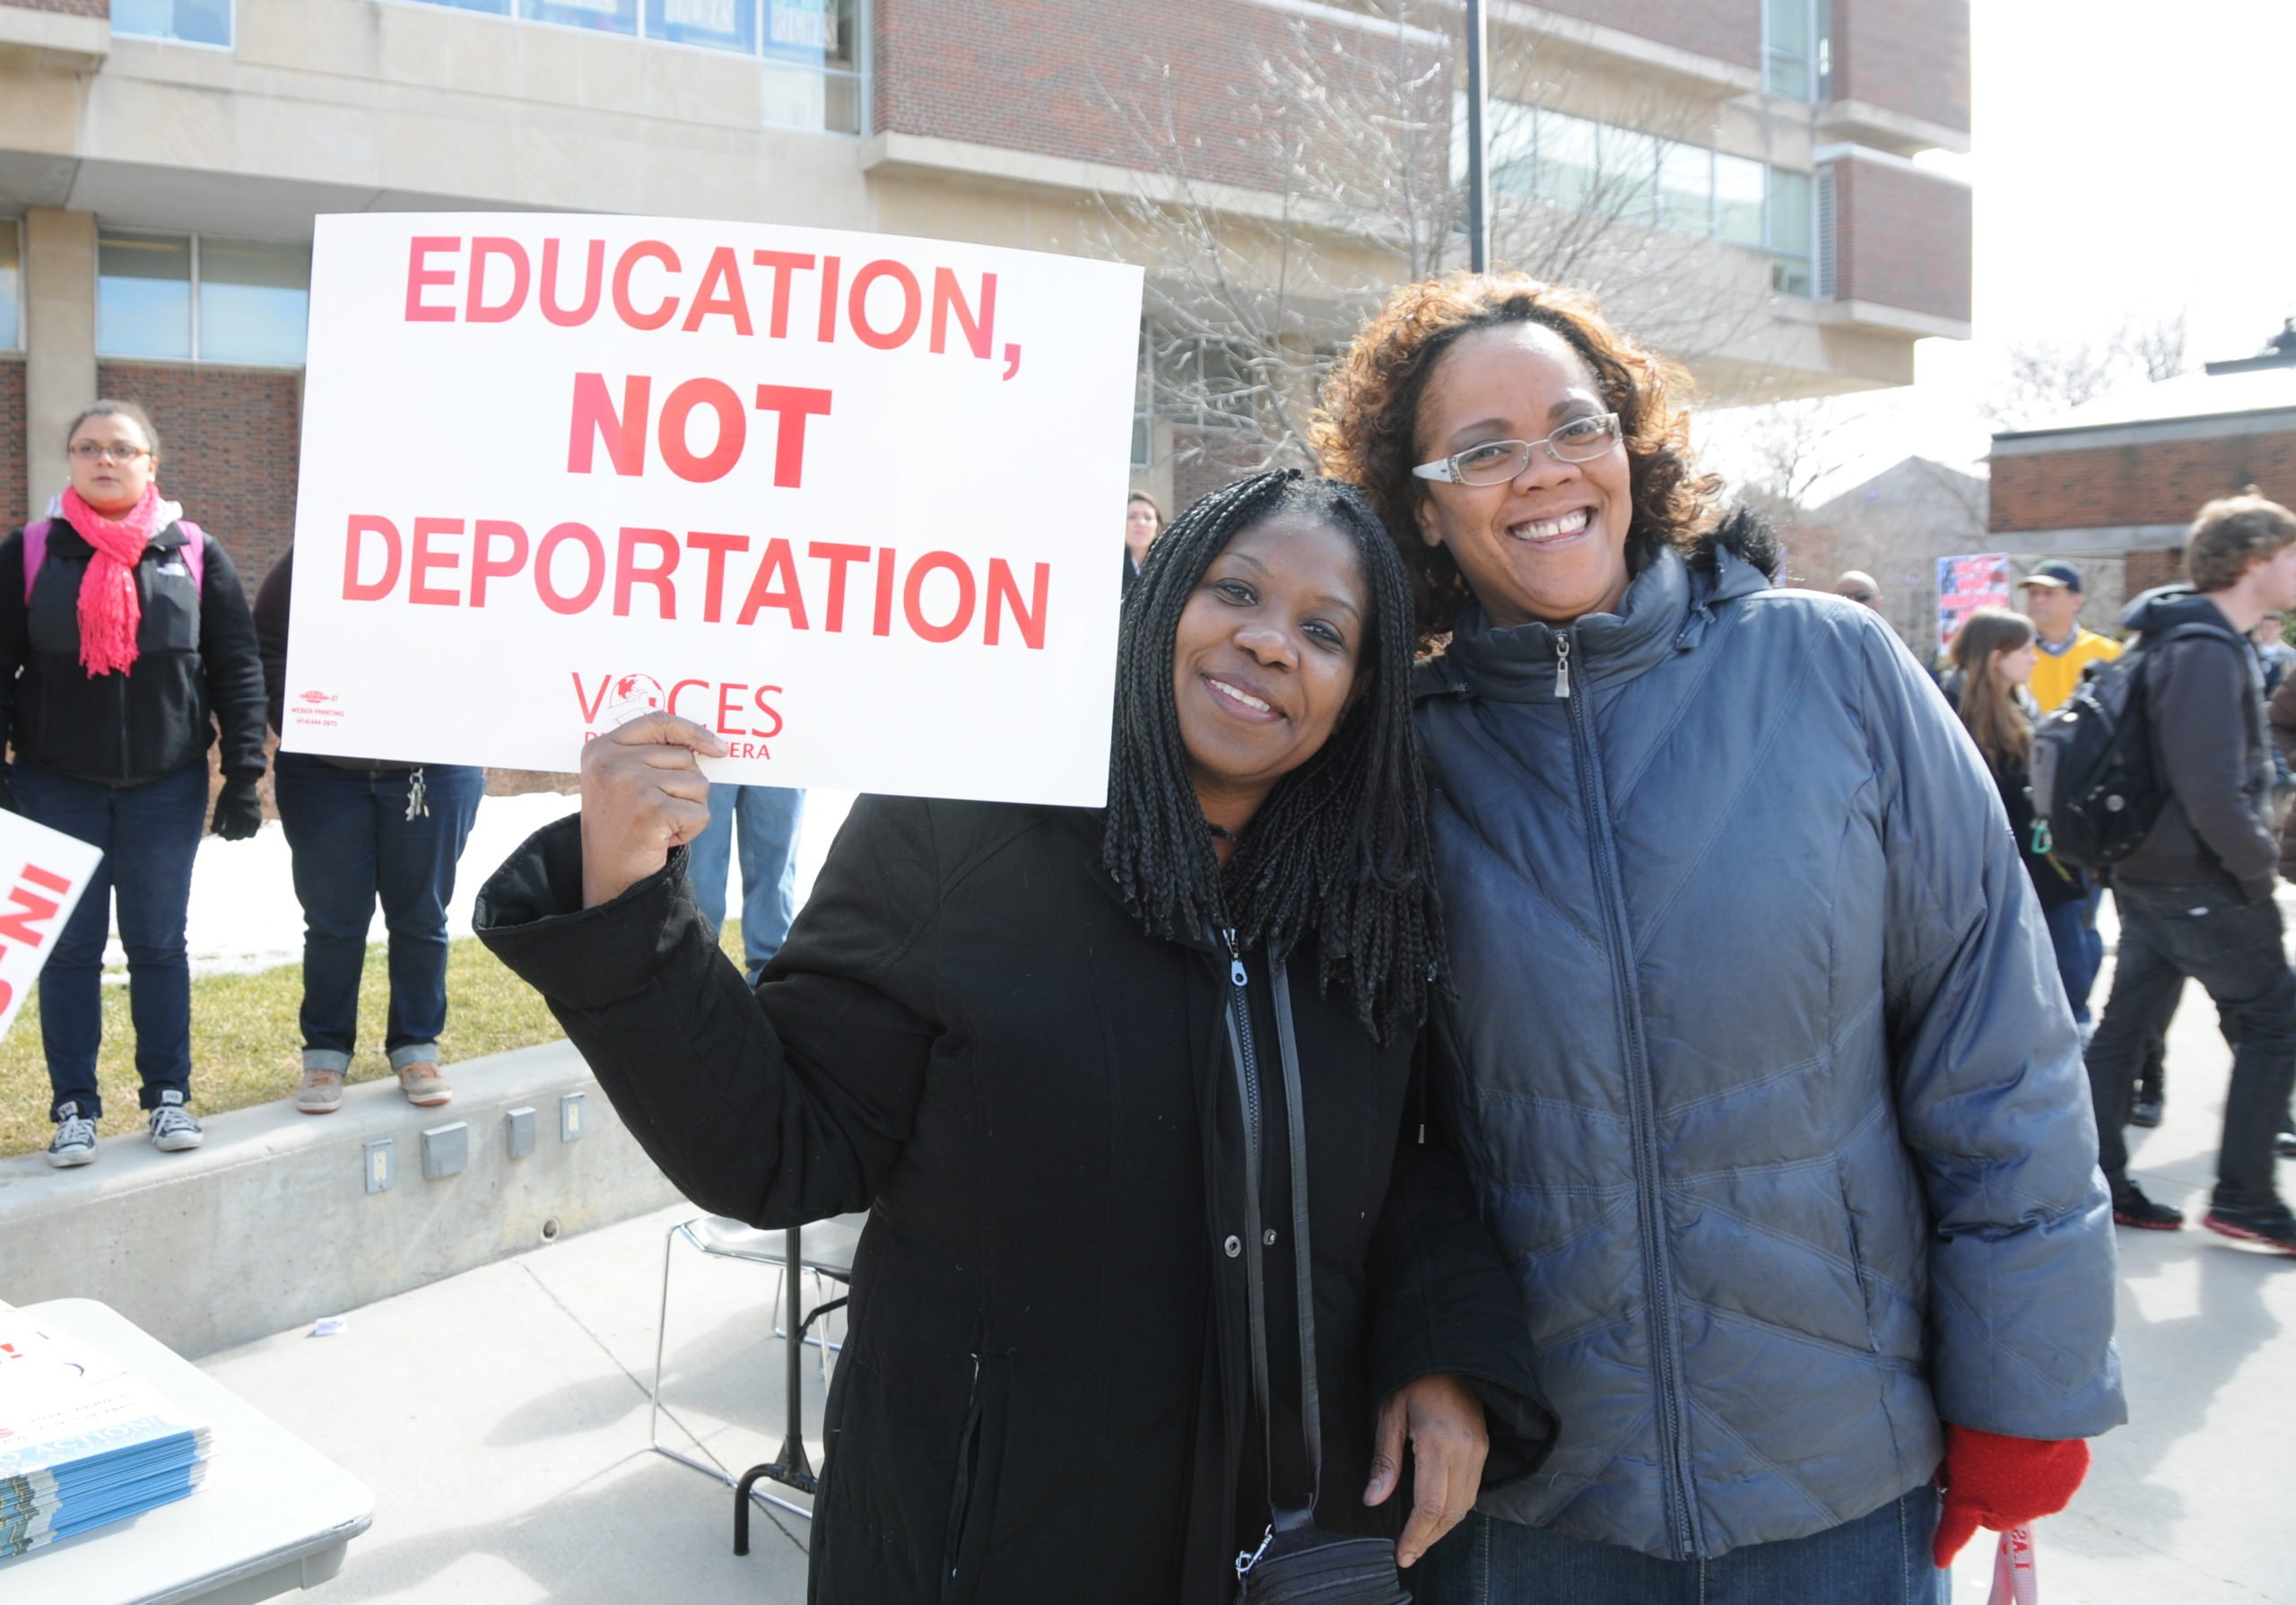 Pressure From Local Communities Stops Deportation Orders